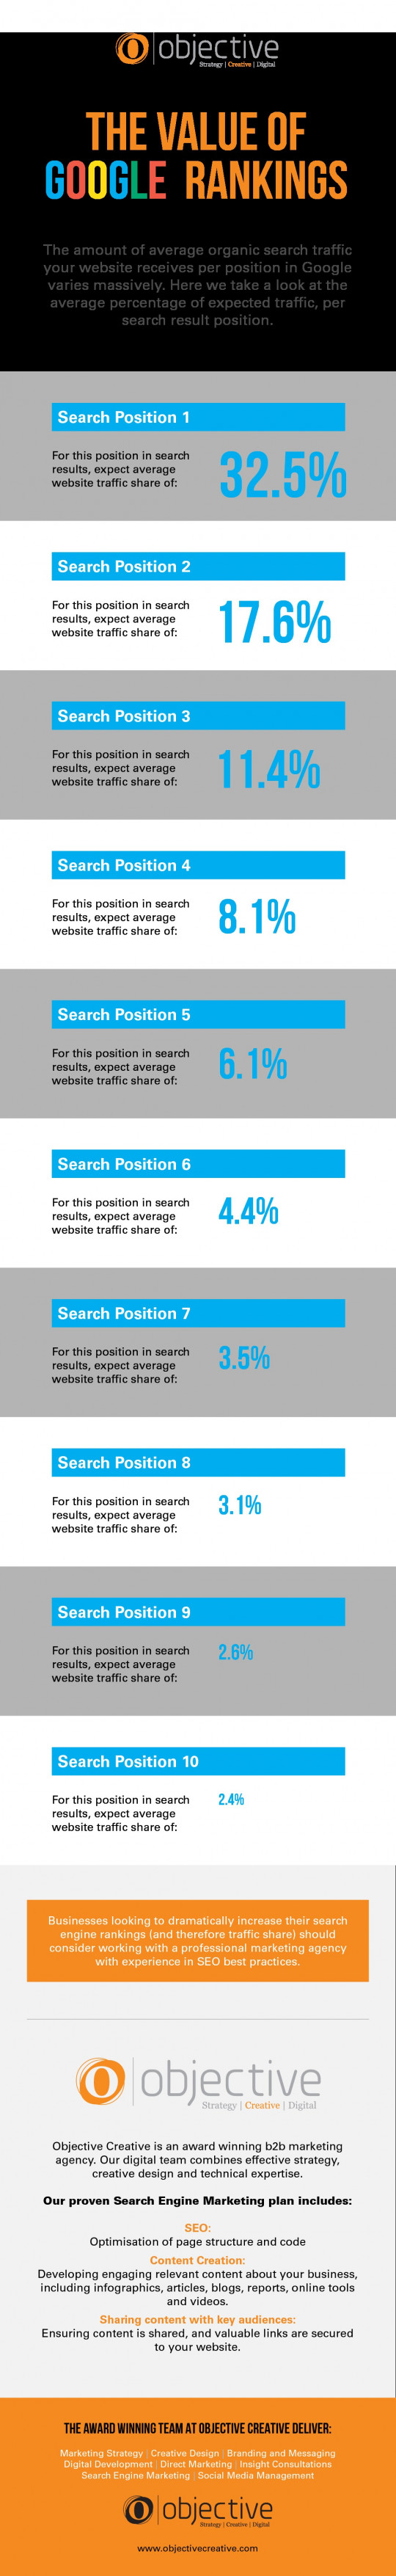 The Value of Google Rankings